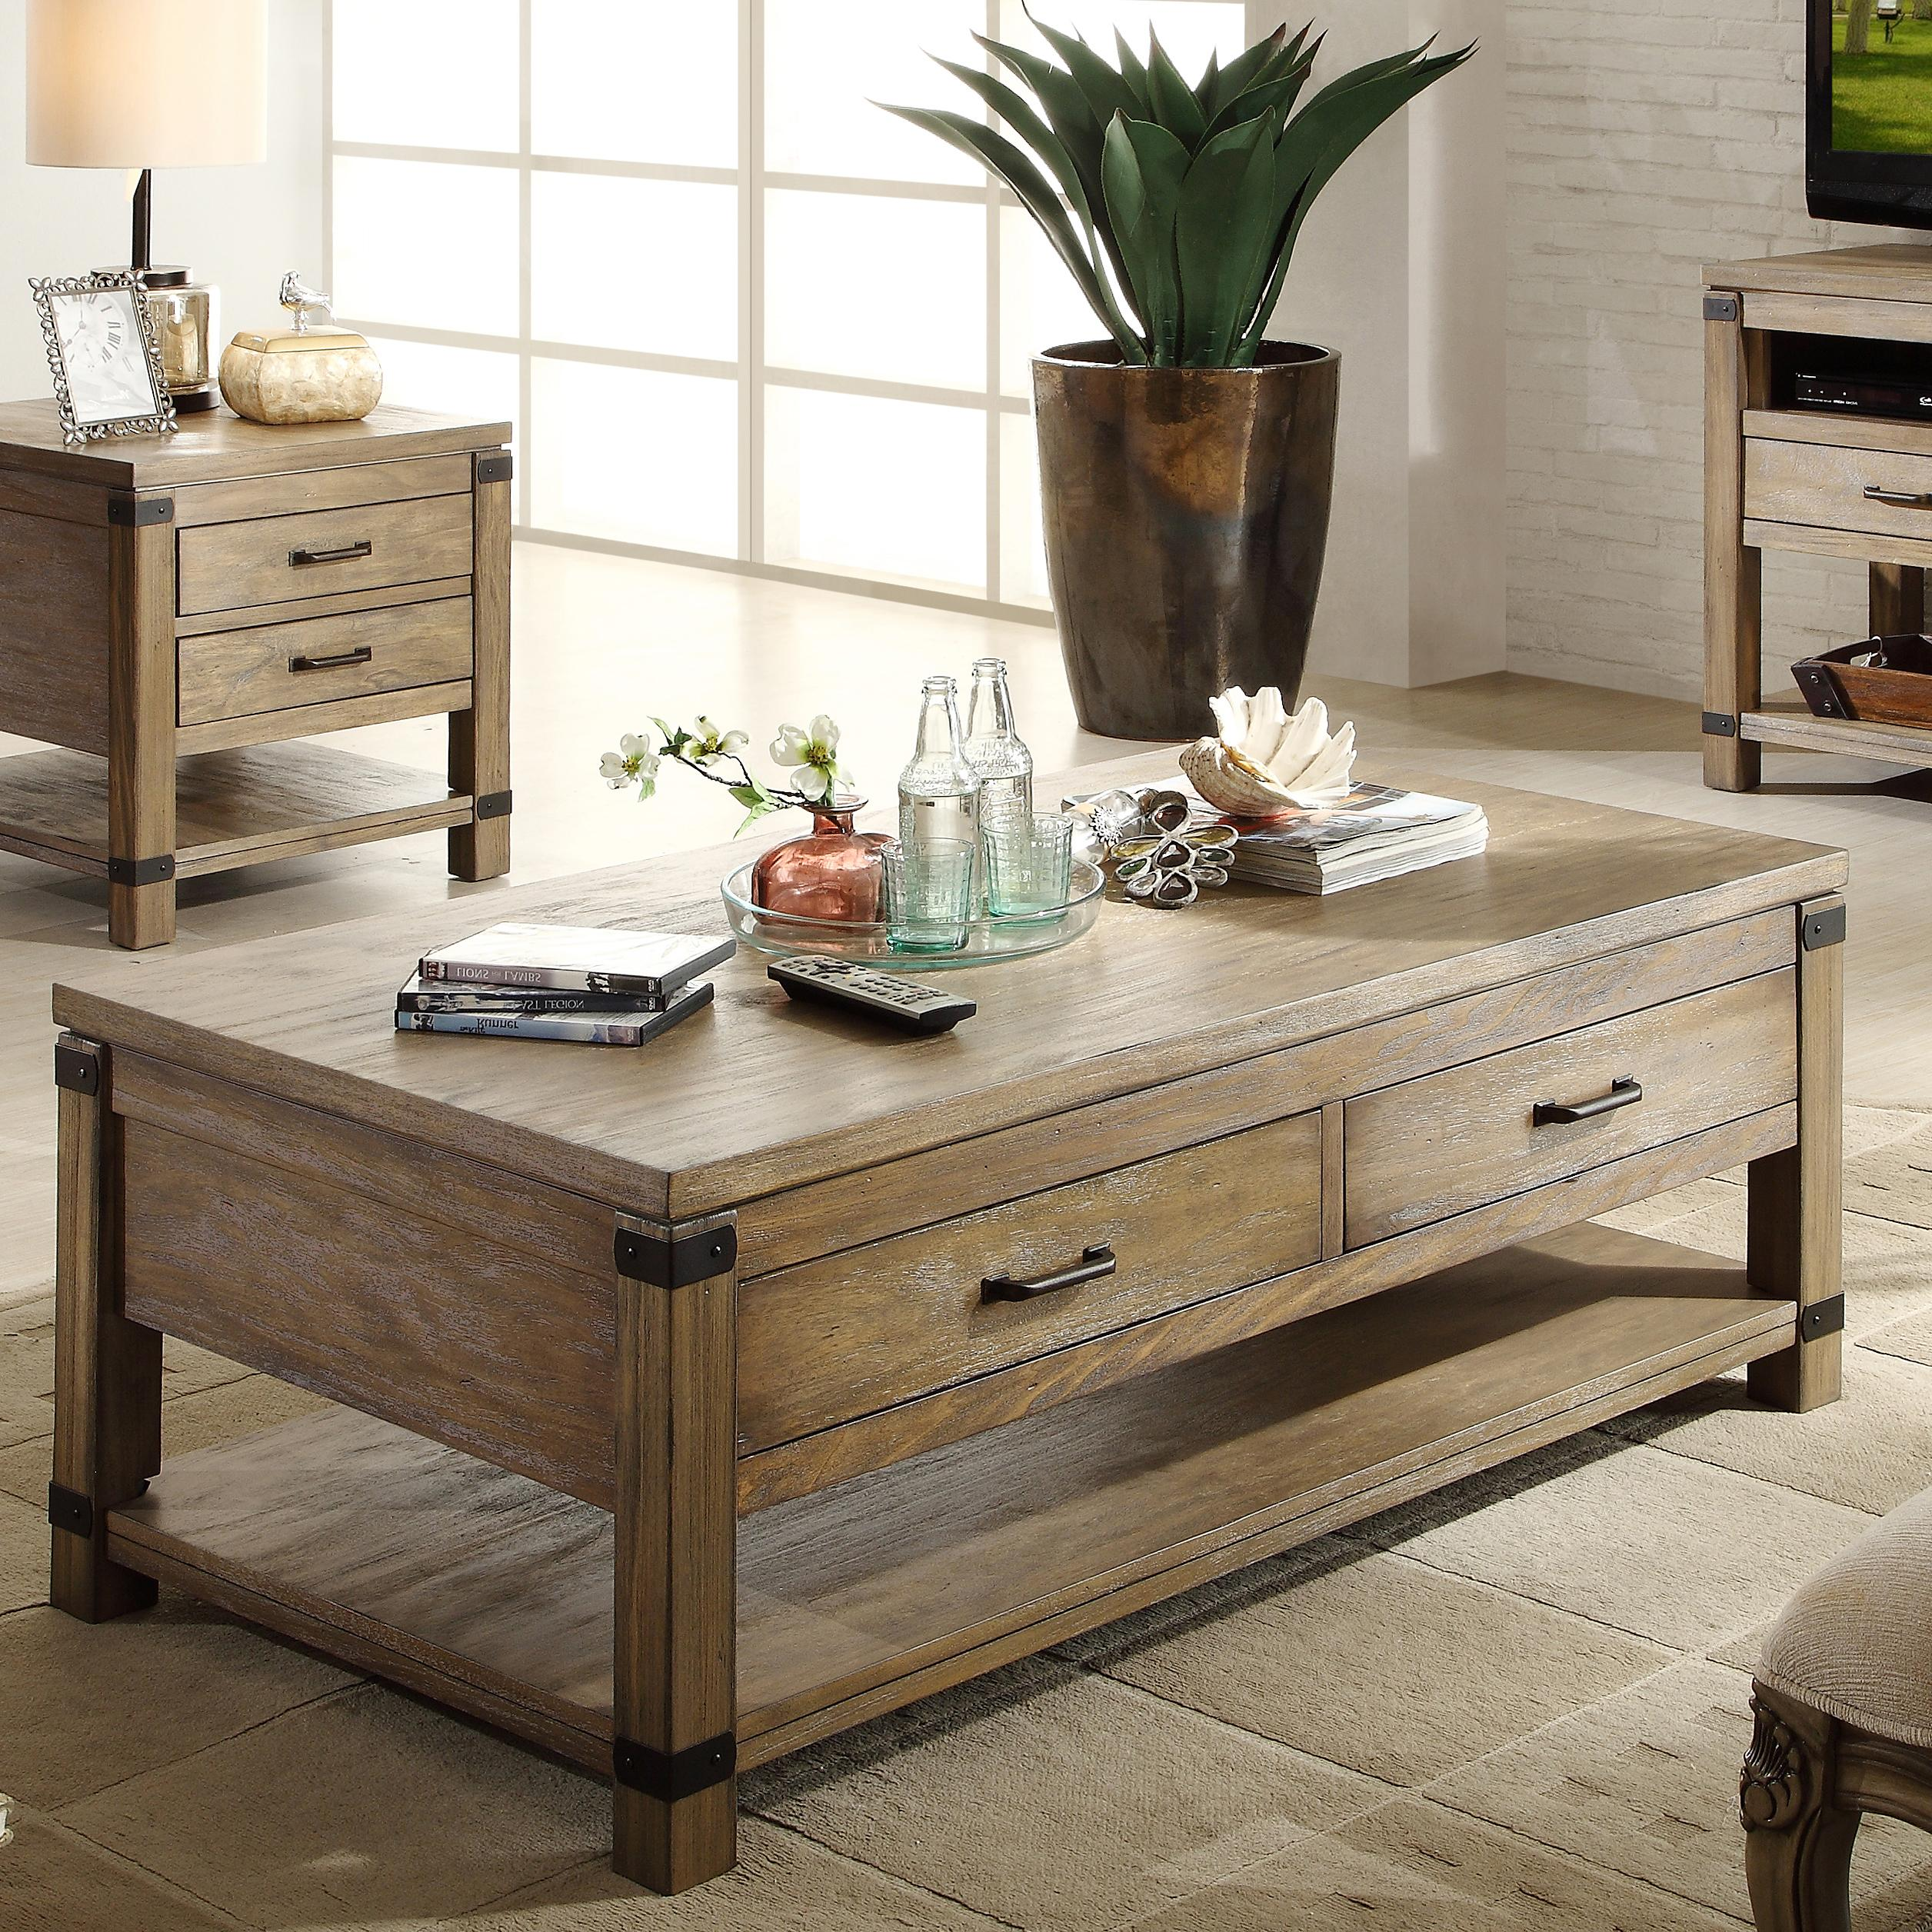 Riverside Furniture Bay Cliff Rectangular Cocktail Table with 2 Drawers - Hudsonu0026#39;s Furniture ...